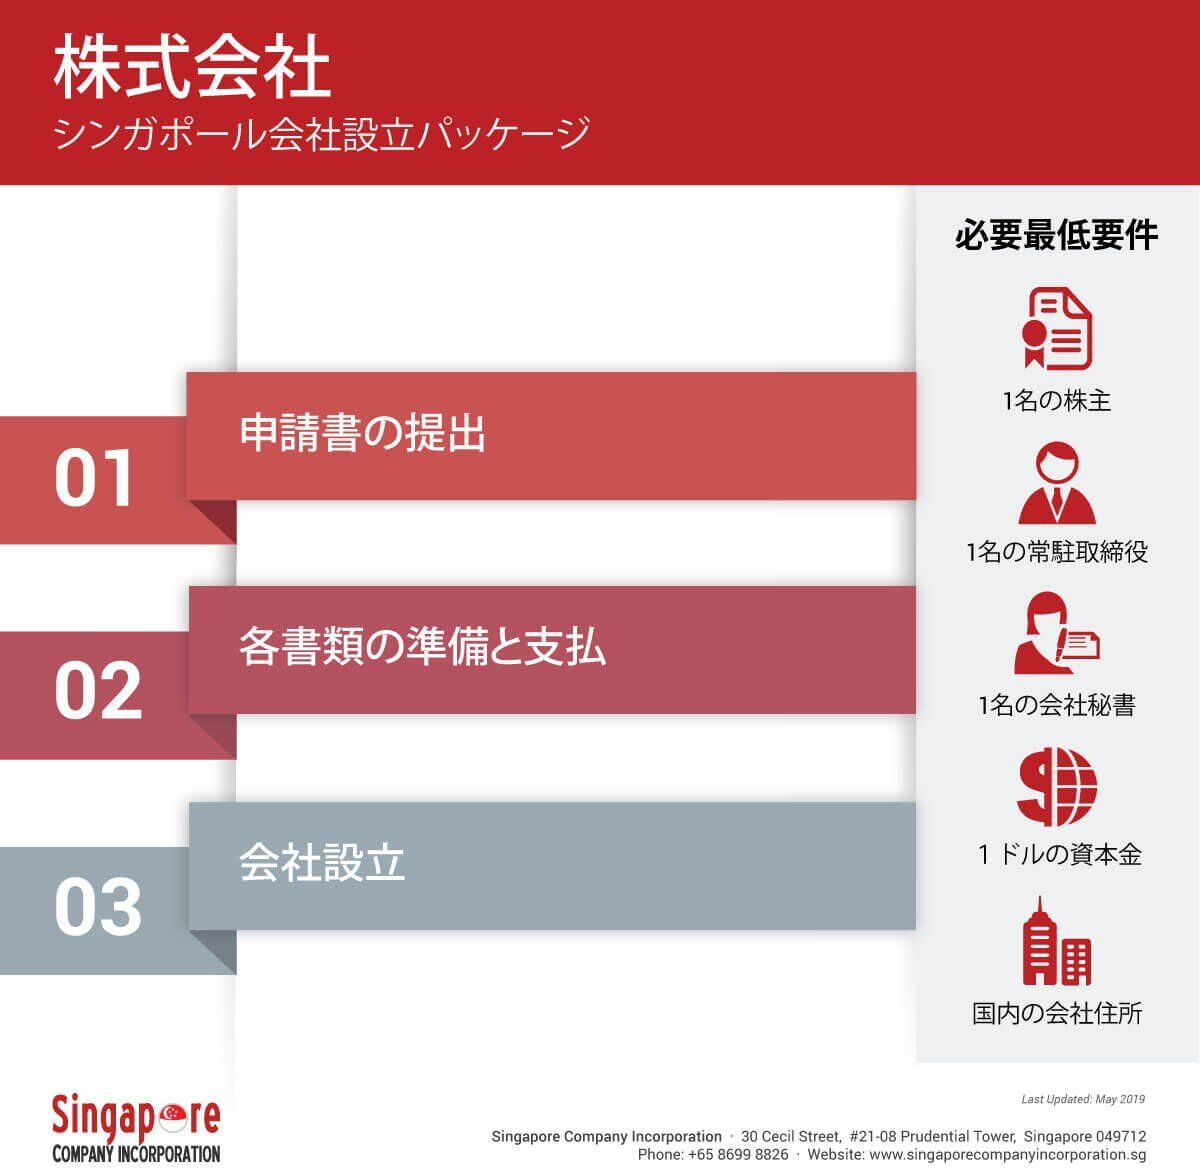 singapore-private-limited-company-registration-1 シンガポールでの株式会社の設立